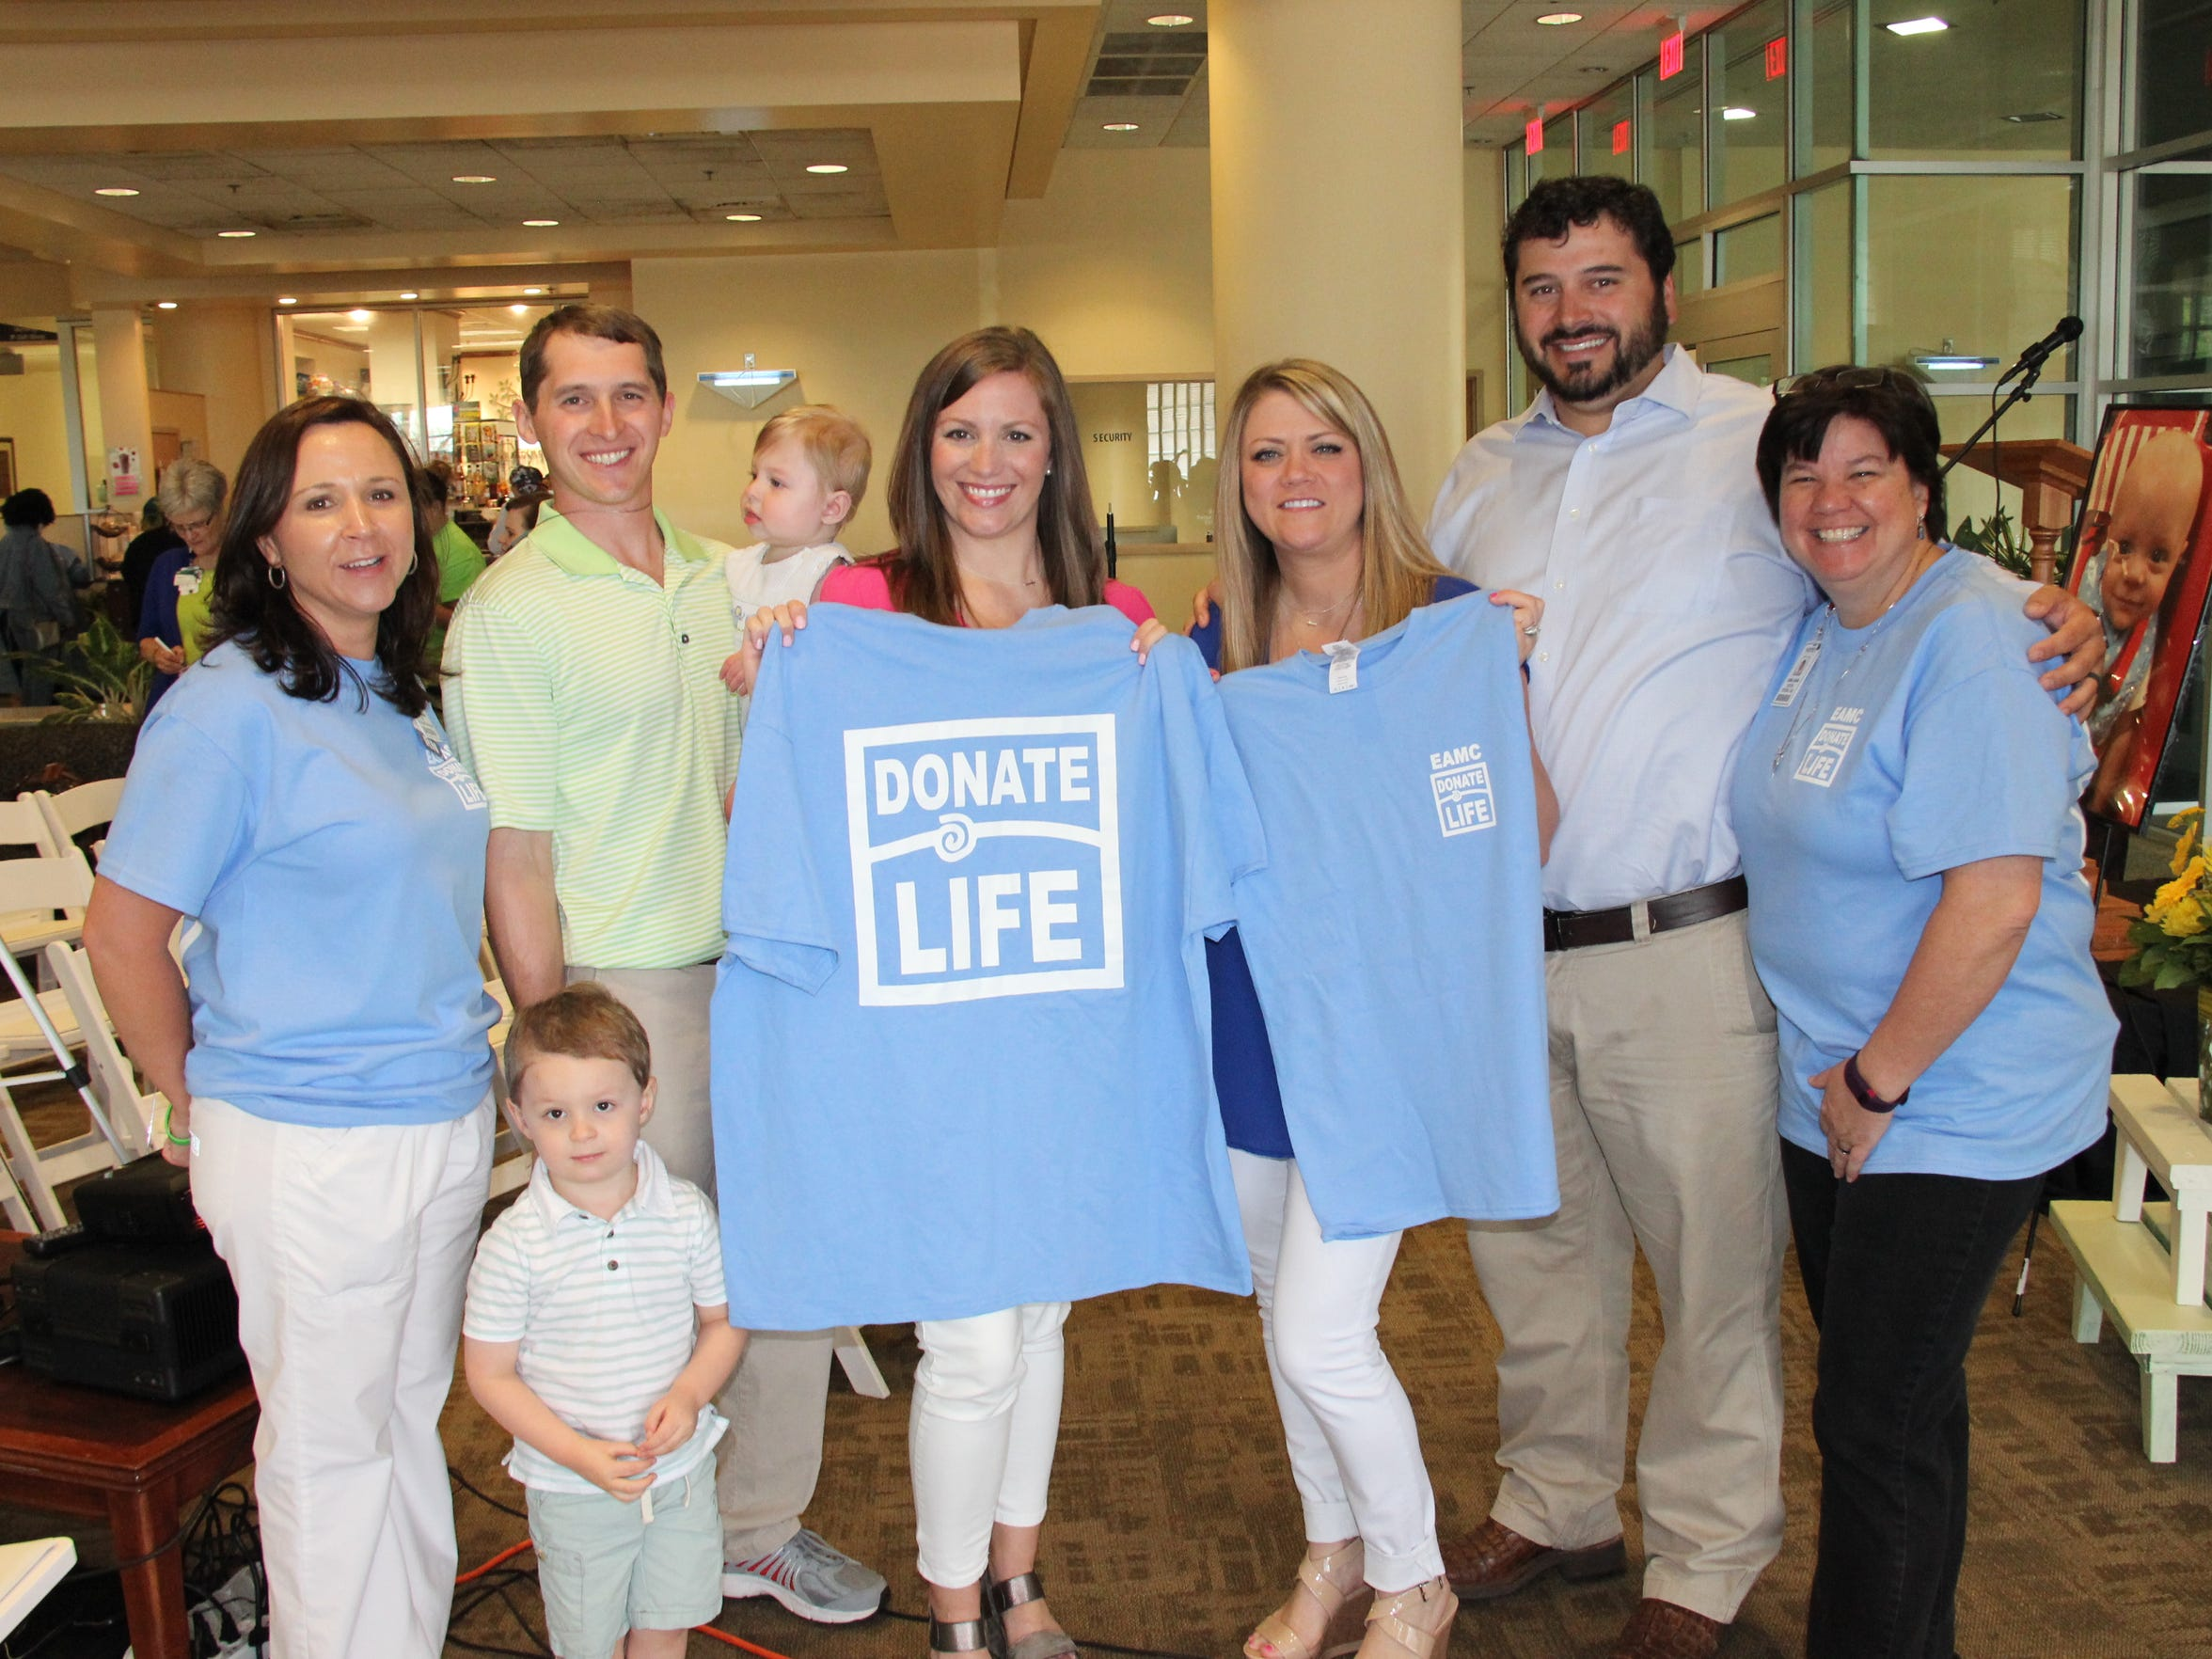 Lisa Harmon, nurse manager and chair of East Alabama Medical Center's Donate Life committee, Hudson Boswell, Tucker Boswell, Davis Boswell, Amanda Boswell, Holley Perry, Jonathan Perry and Laura Eason, EAMC chaplain, display Donate Life t-shirts following the hospital's annual Donate Life ceremony.